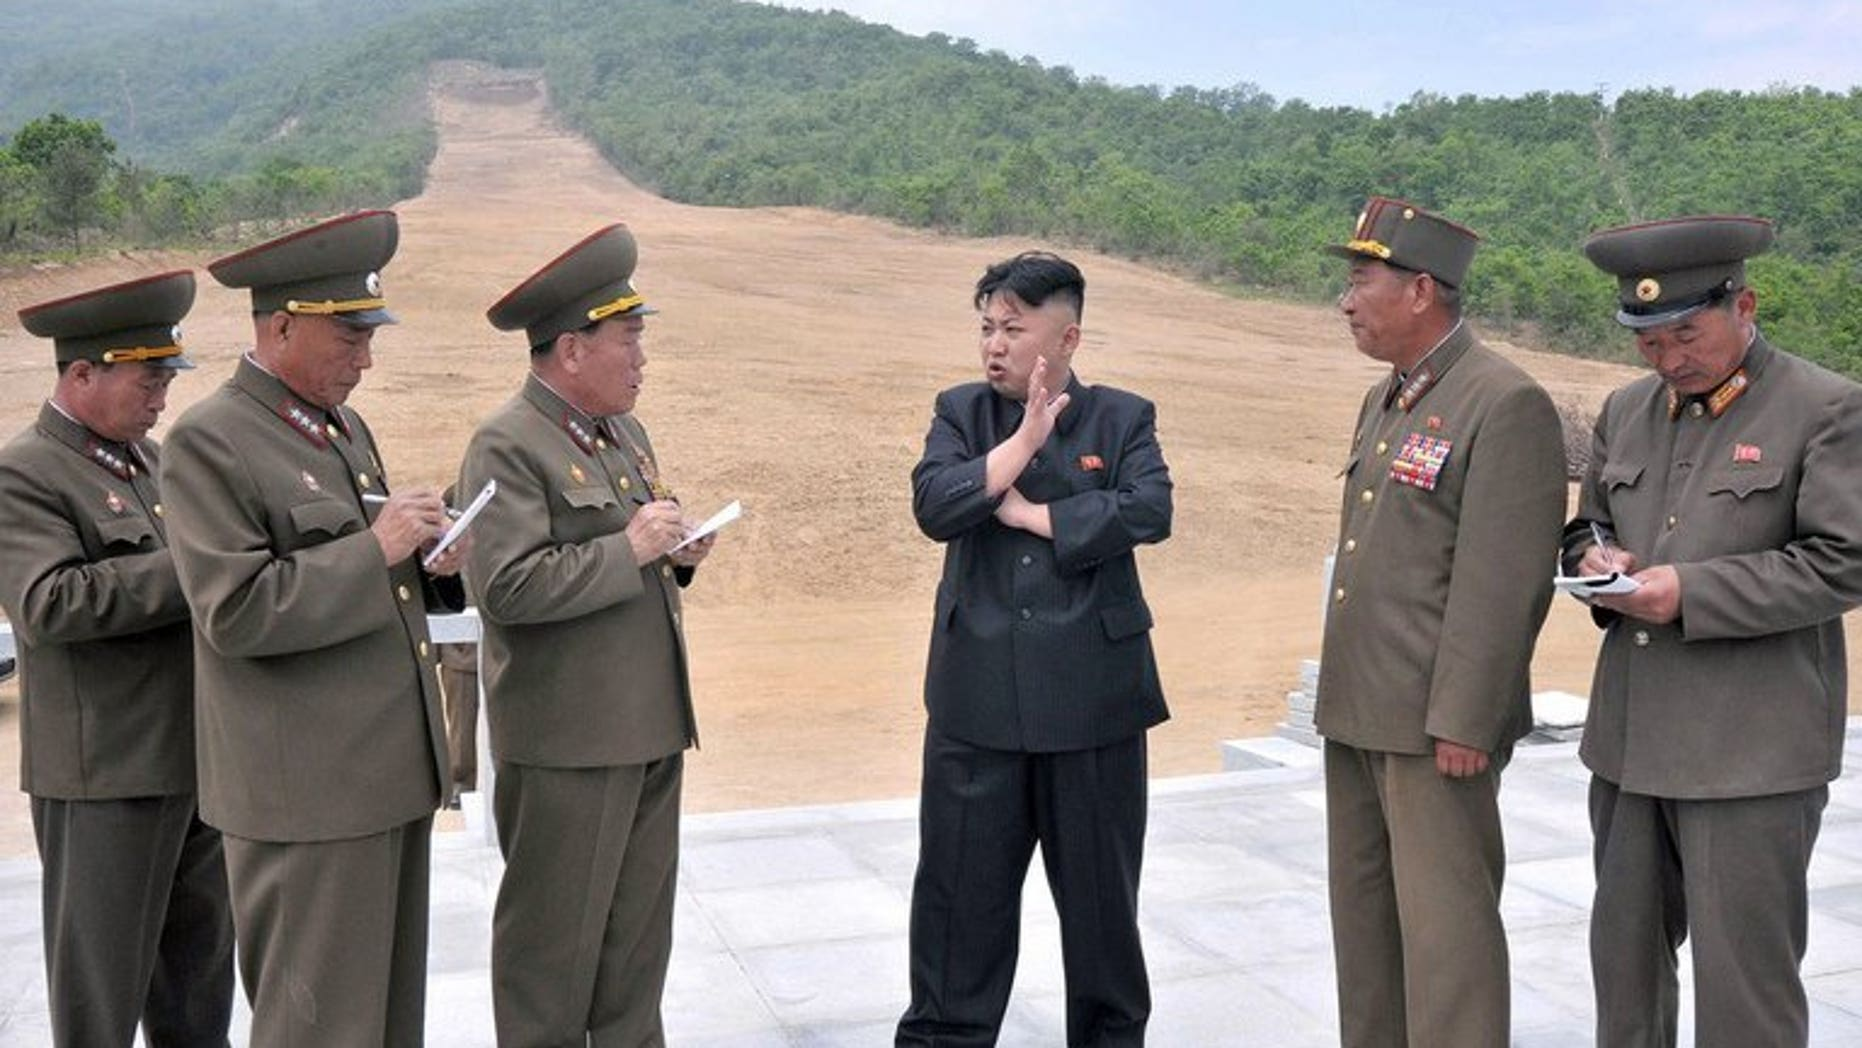 Undated recent photo released by North Korea's official Korean Central News Agency on May 27, 2013 claims to show North Korean leader Kim Jong-Un (C) talking to army officials at the Masik Pass Skiing Ground under construction by the Korean People's Army. Switzerland said Monday that it had blocked a deal to sell top-notch ski lifts to North Korea, in a move that could delay the ski project.